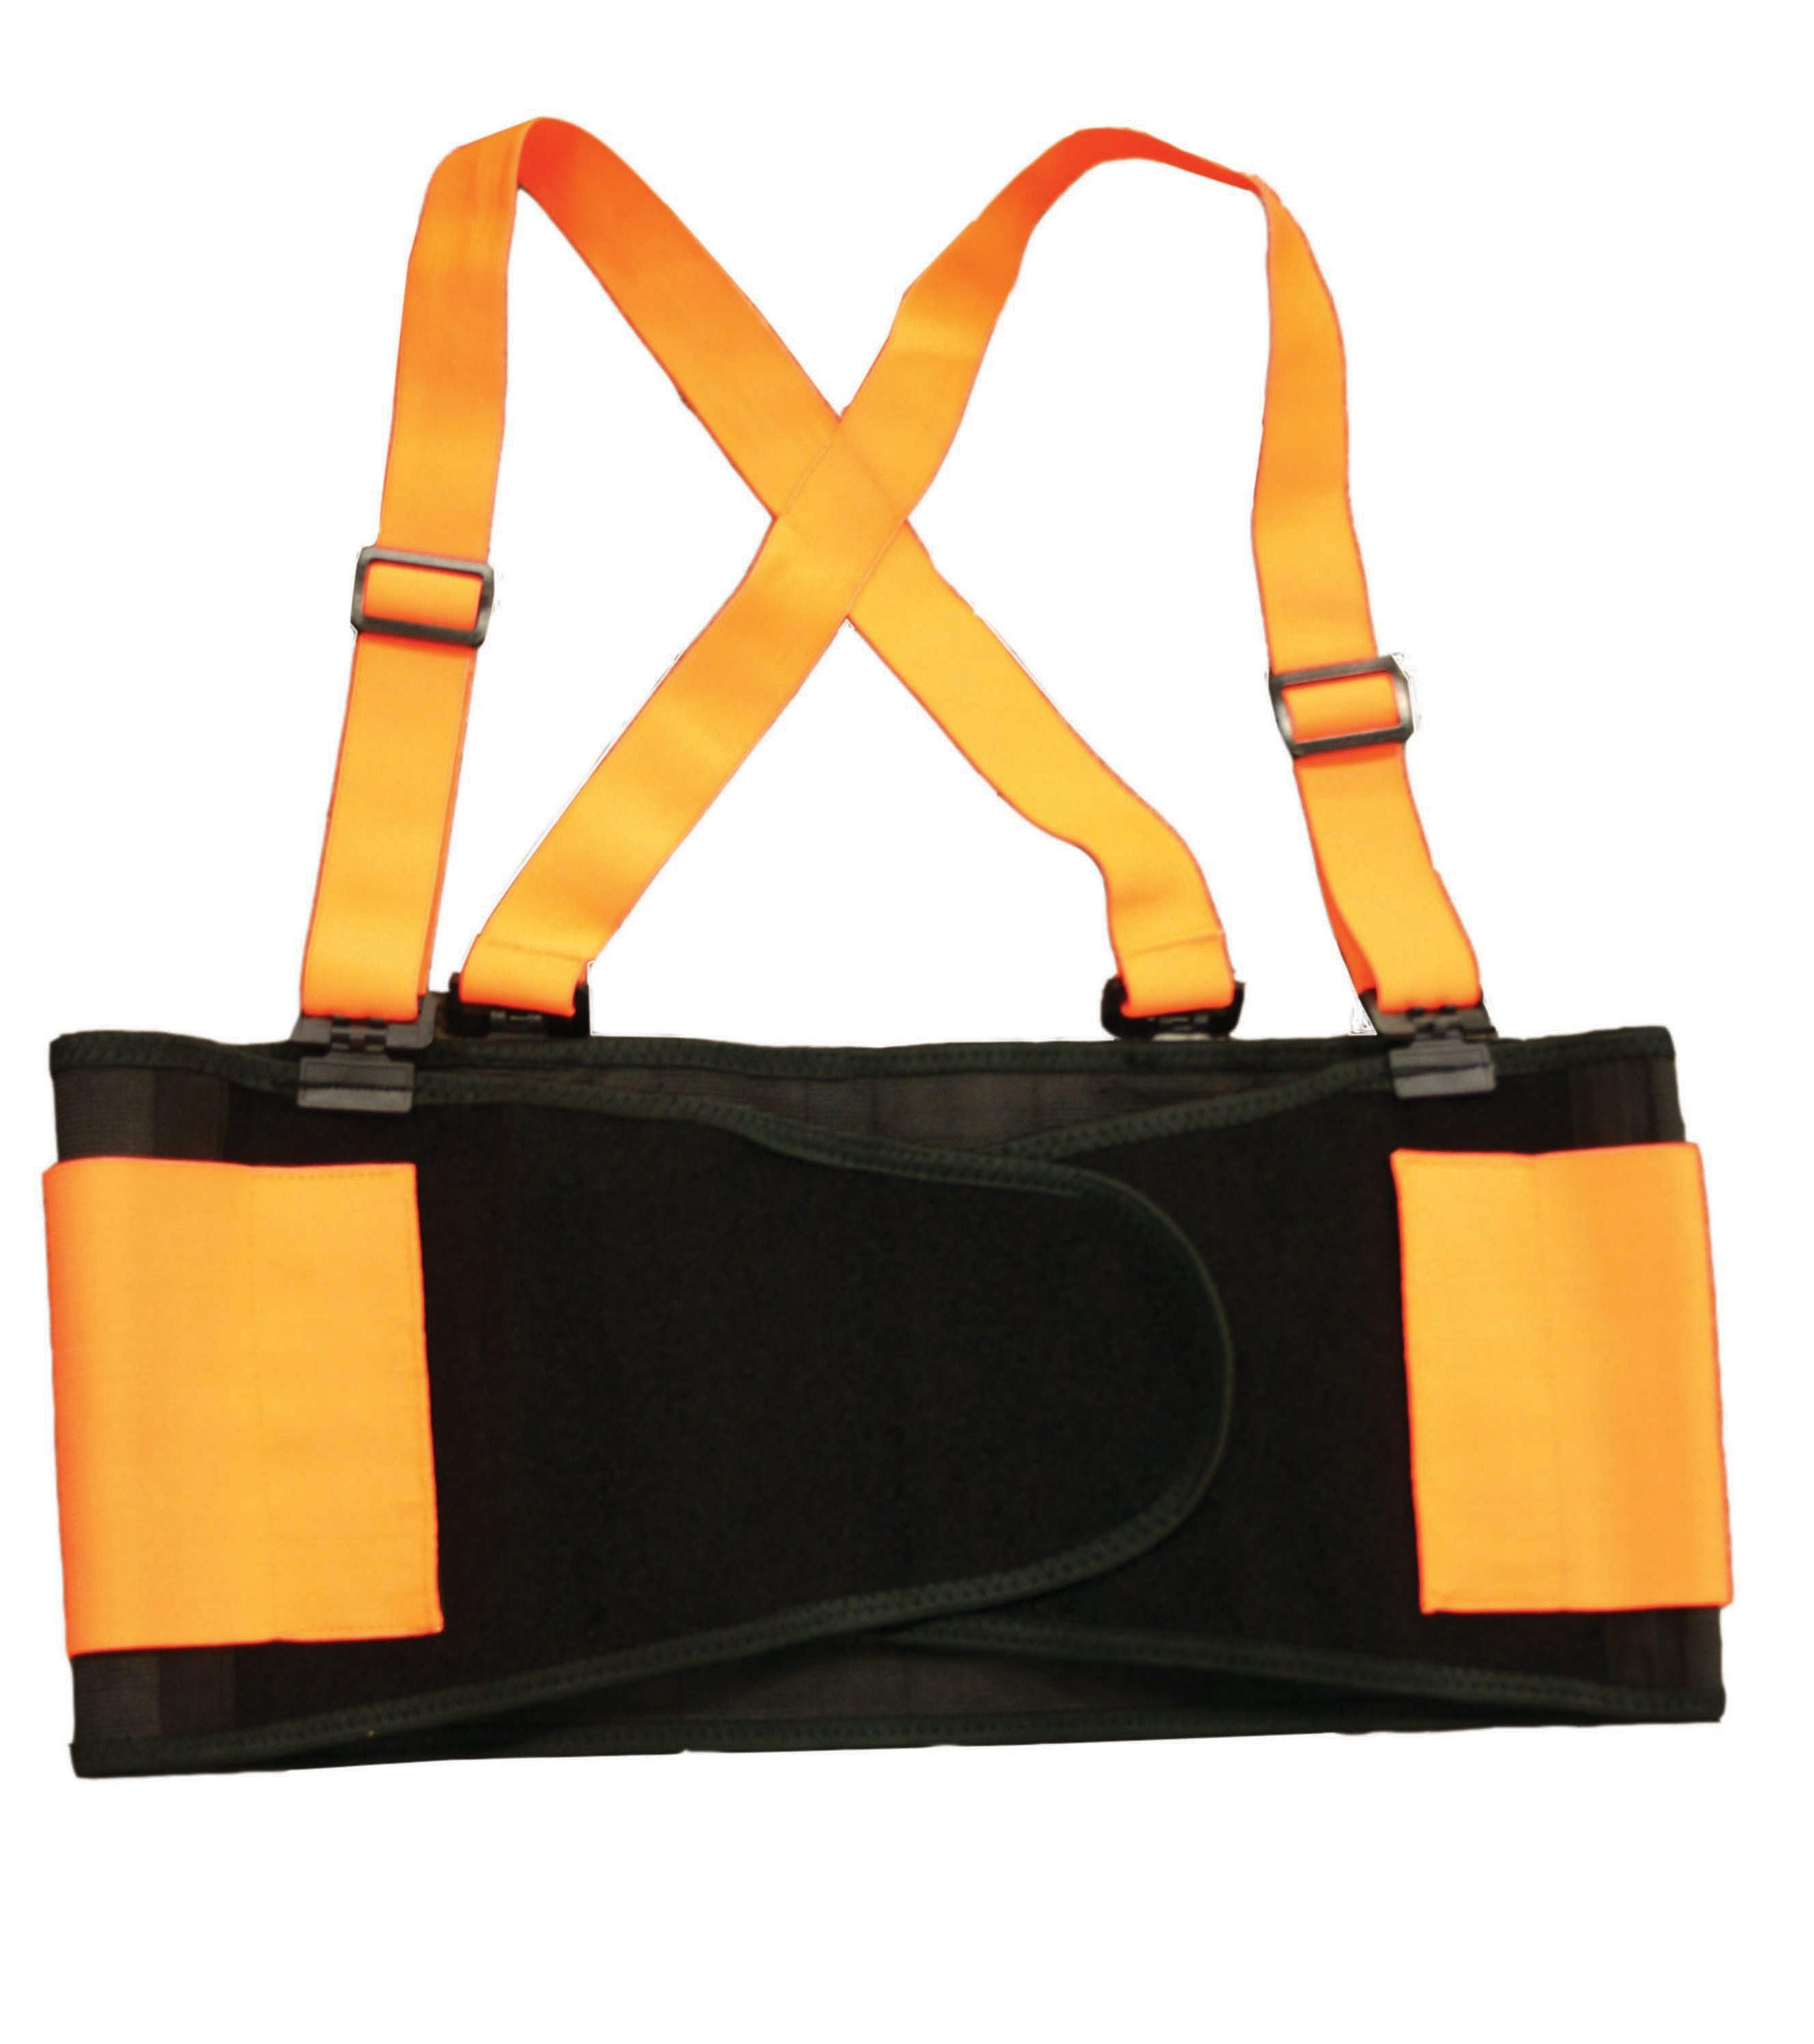 TOTALPACK® Economy Back Support Belt with Suspender - X-Large Orange/Black, 1 Unit